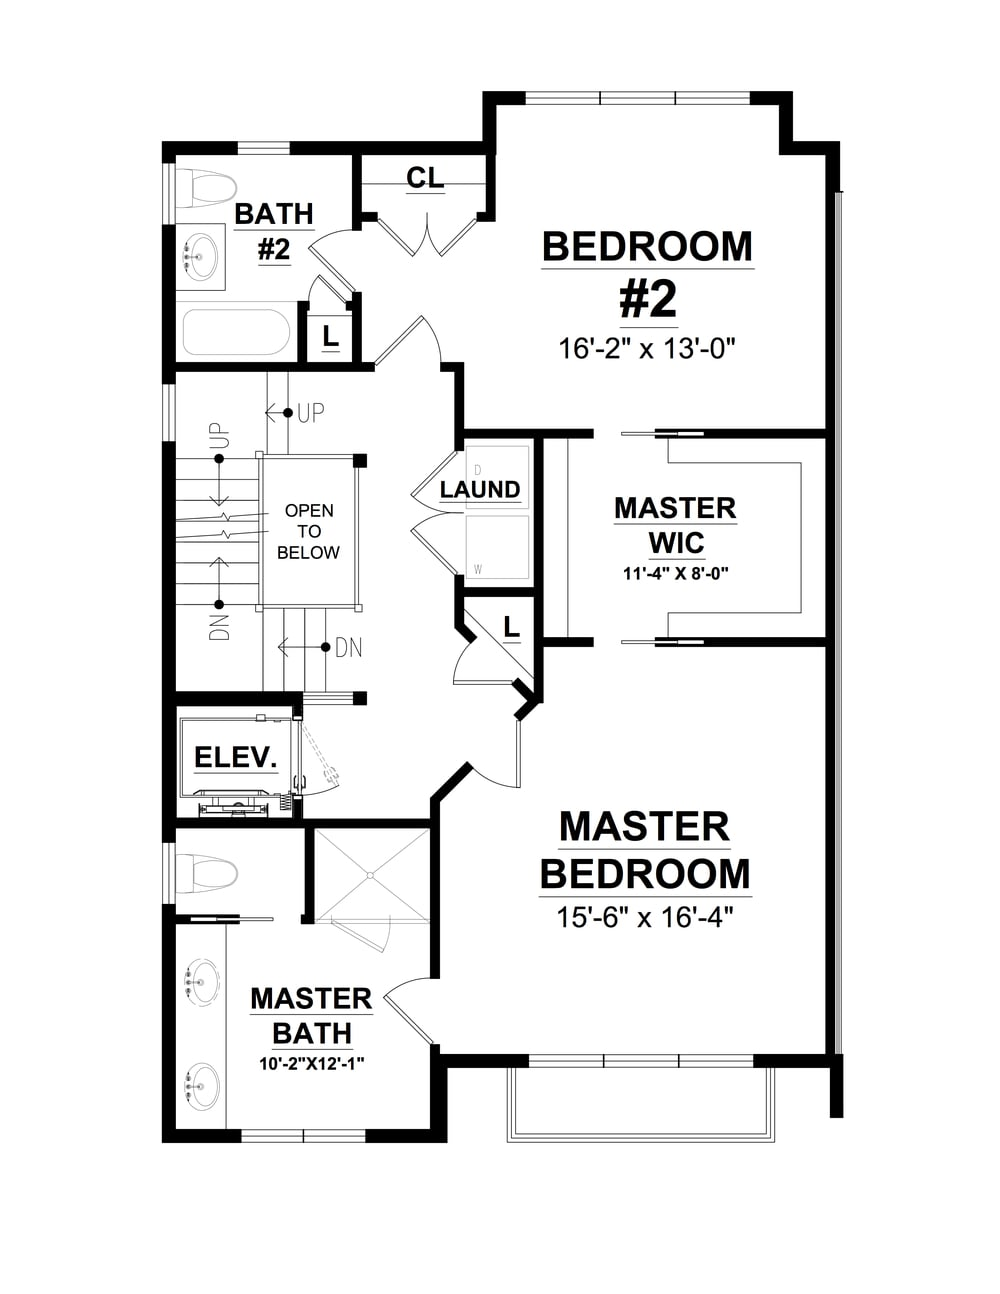 Second Floor Floor Plans cambridge second floor plan Second Floor Plan